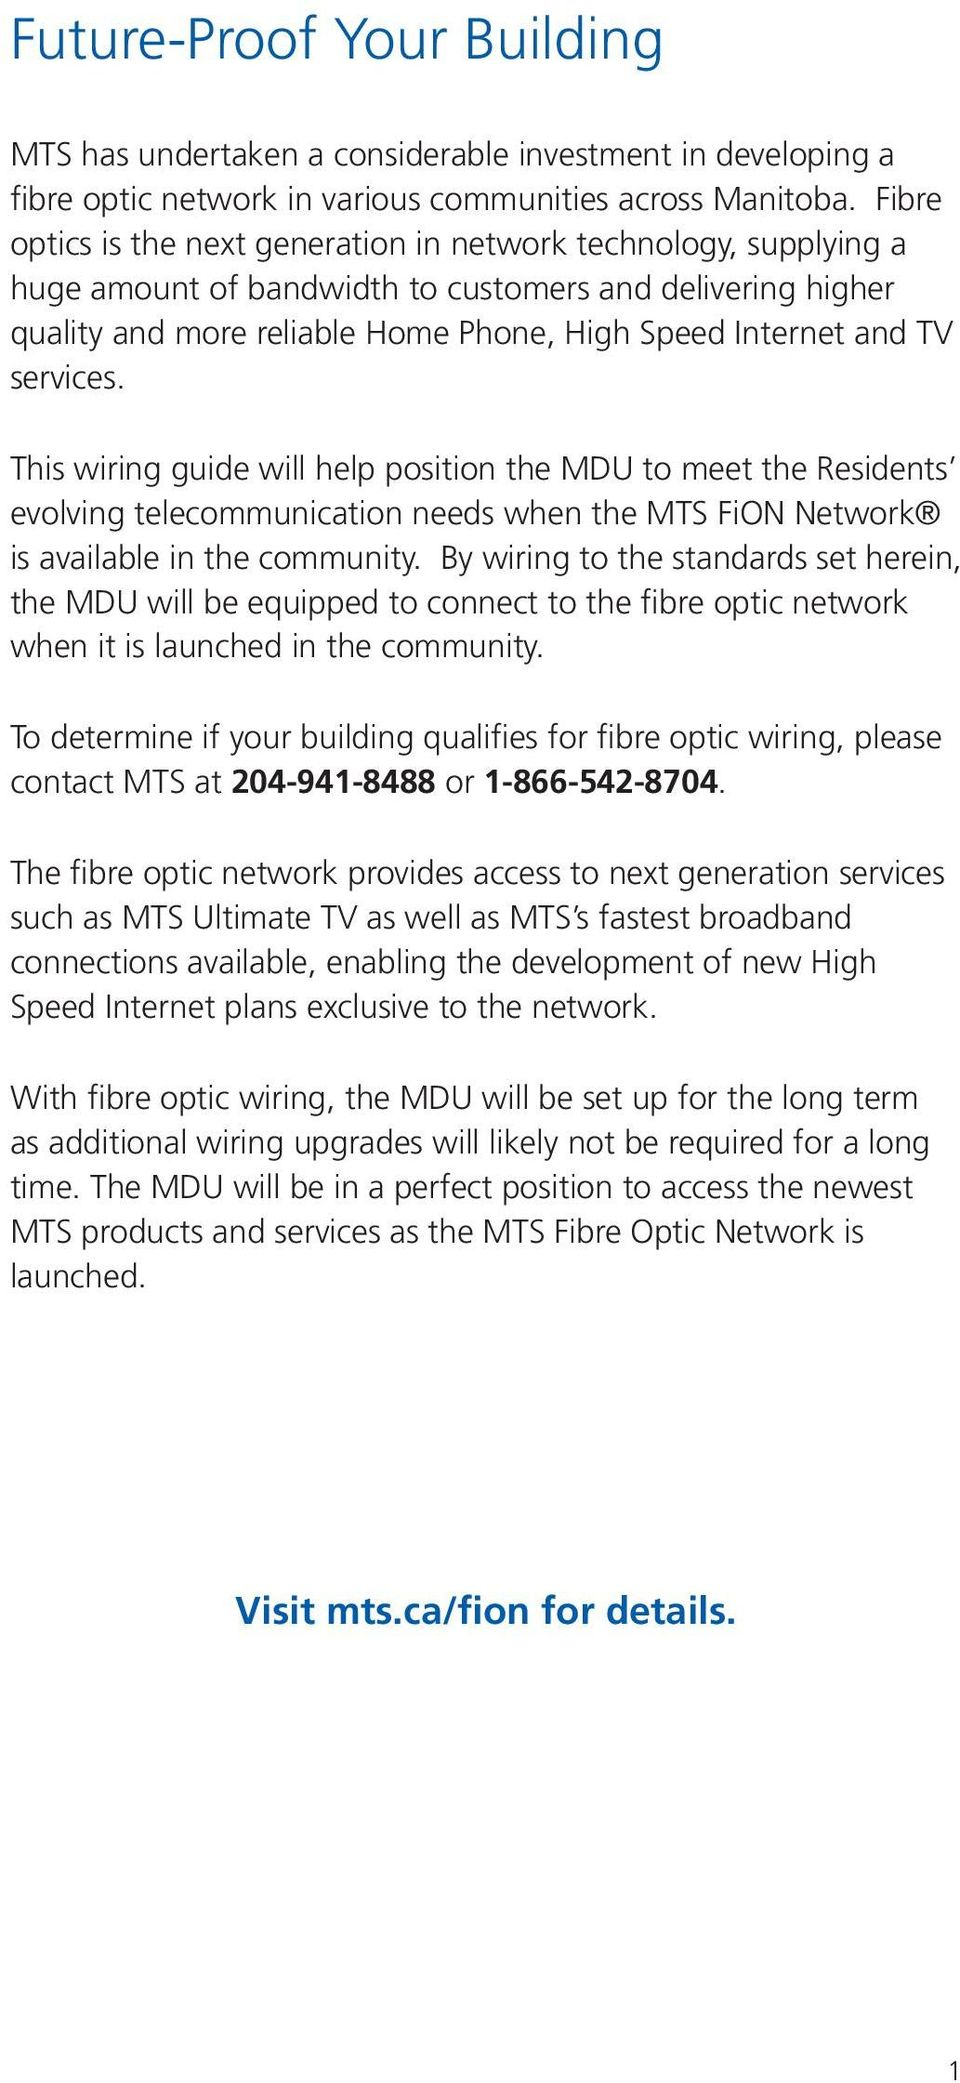 hight resolution of this wiring guide will help position the mdu to meet the residents evolving telecommunication